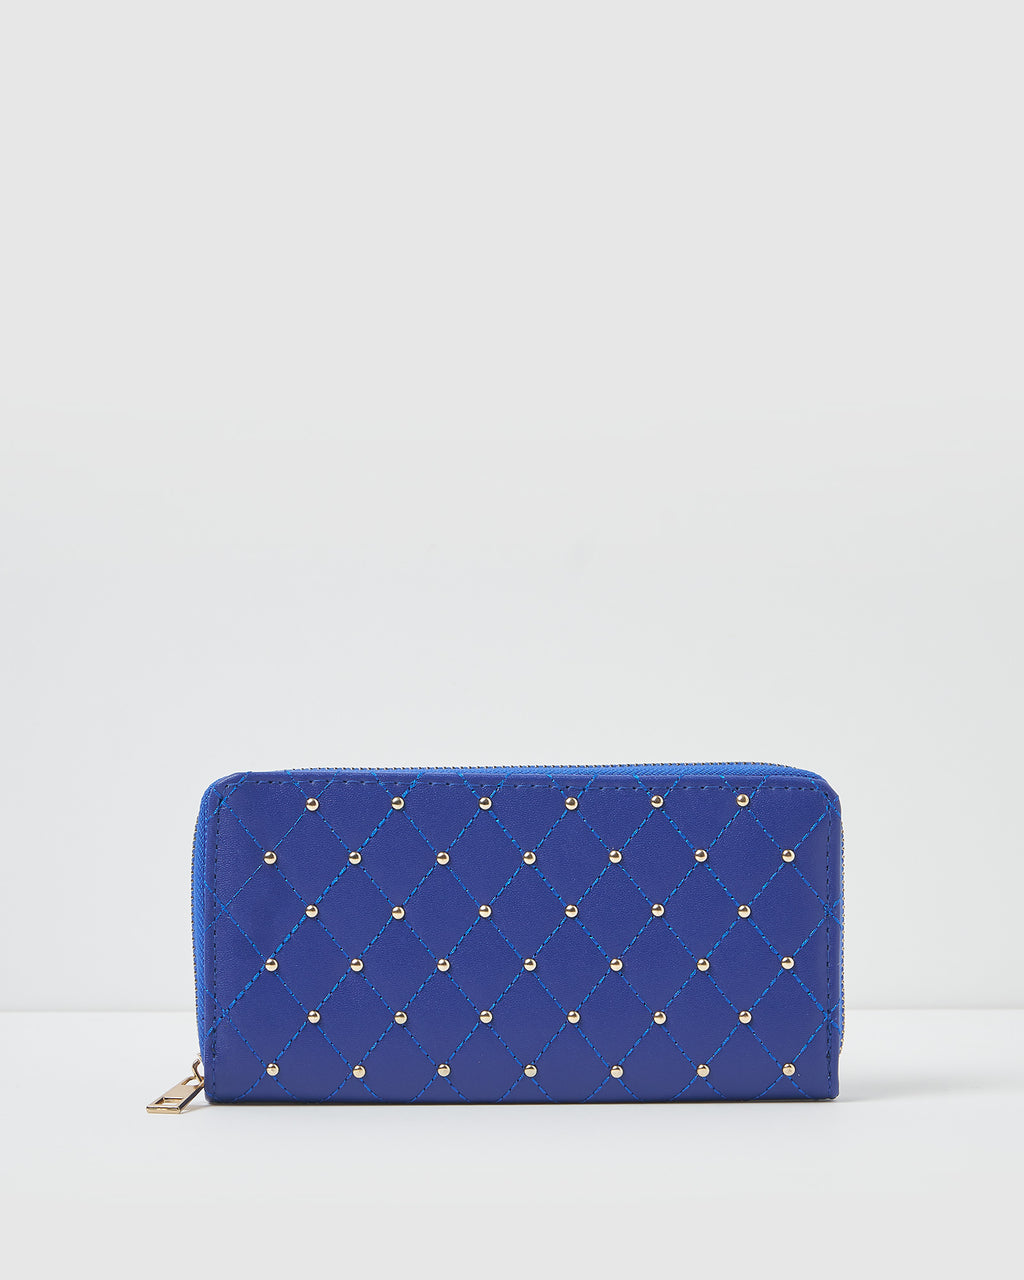 Izoa Carla Wallet Blue